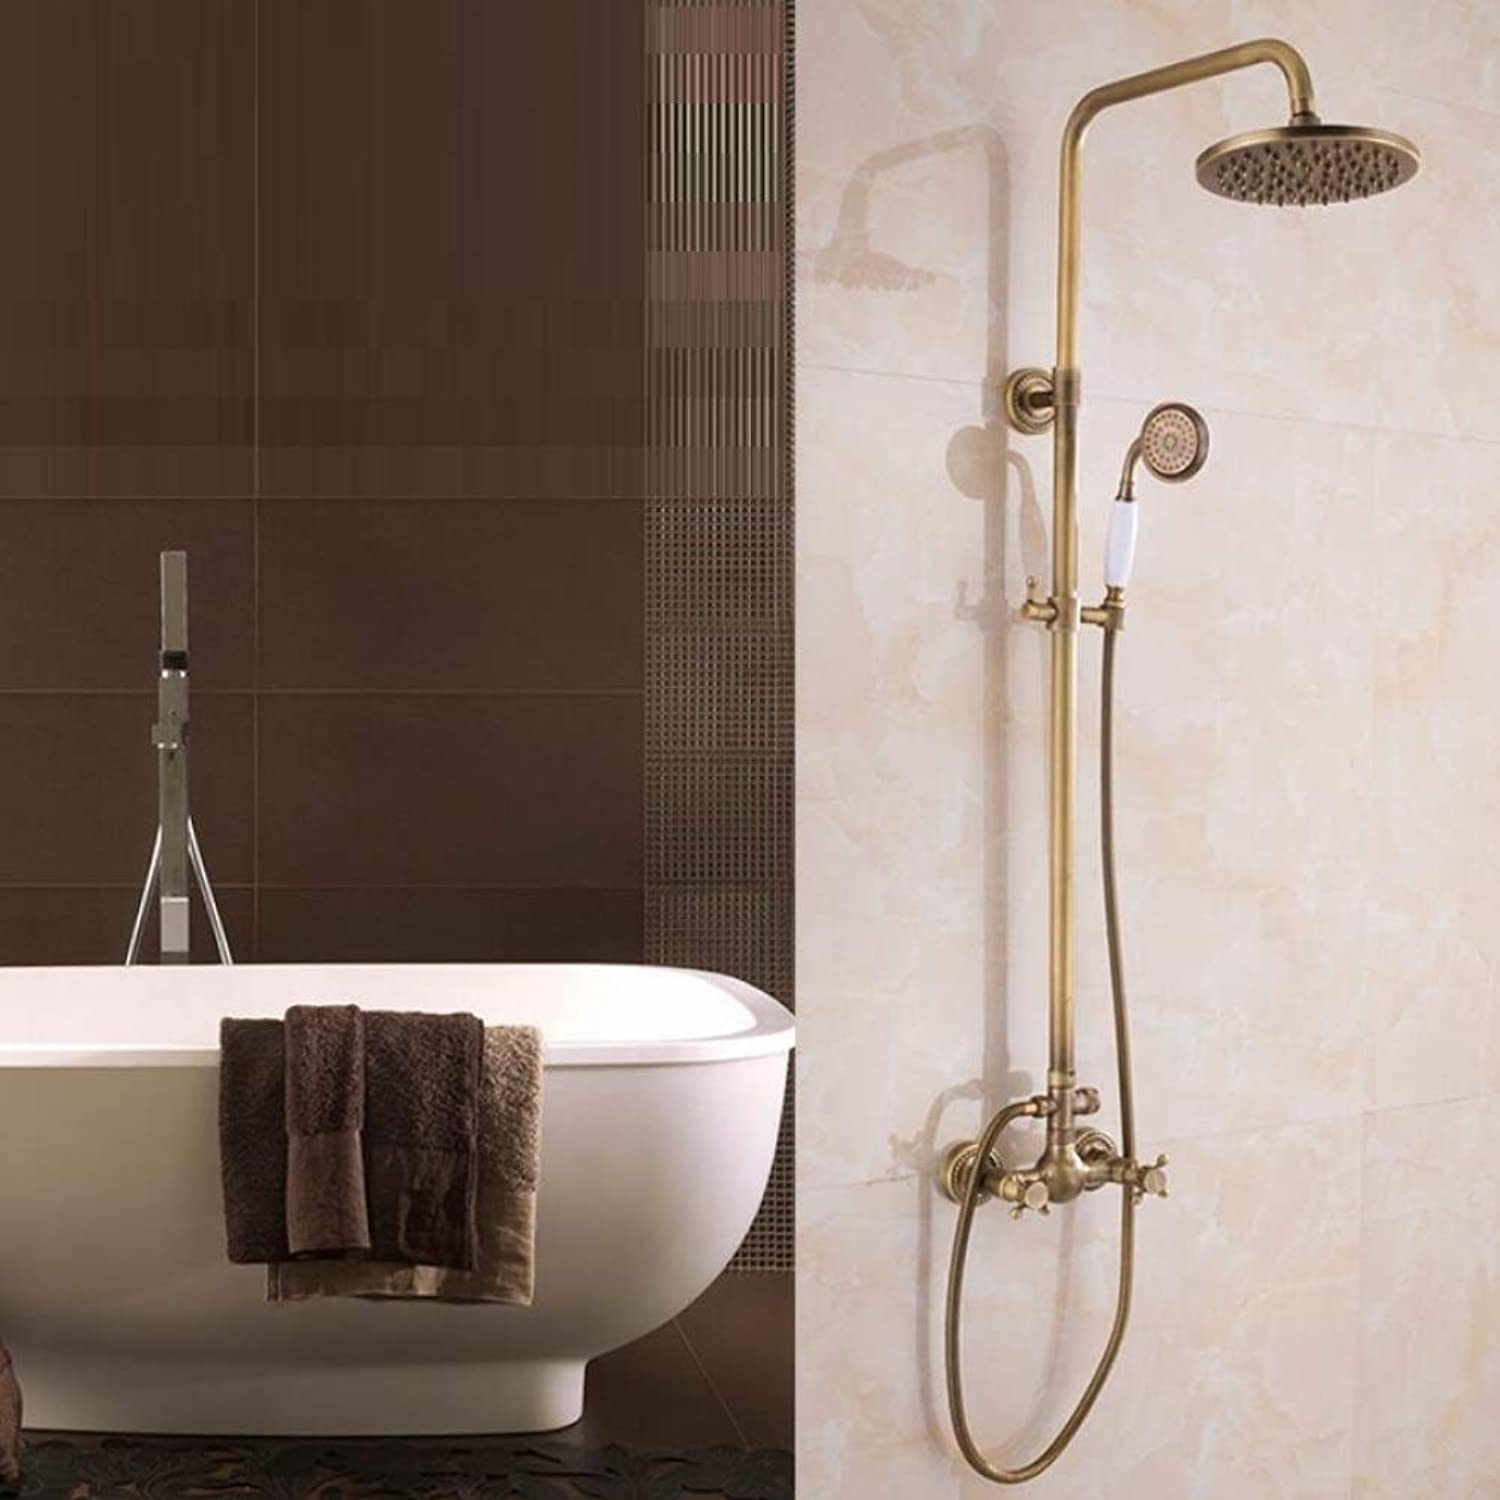 ZXY Bathroom Shower Mixer Set Dual Knobs Mixer Rainfall Shower Set, top shower Head and Handheld shower set, Bathroom Antique Copper Shower Set